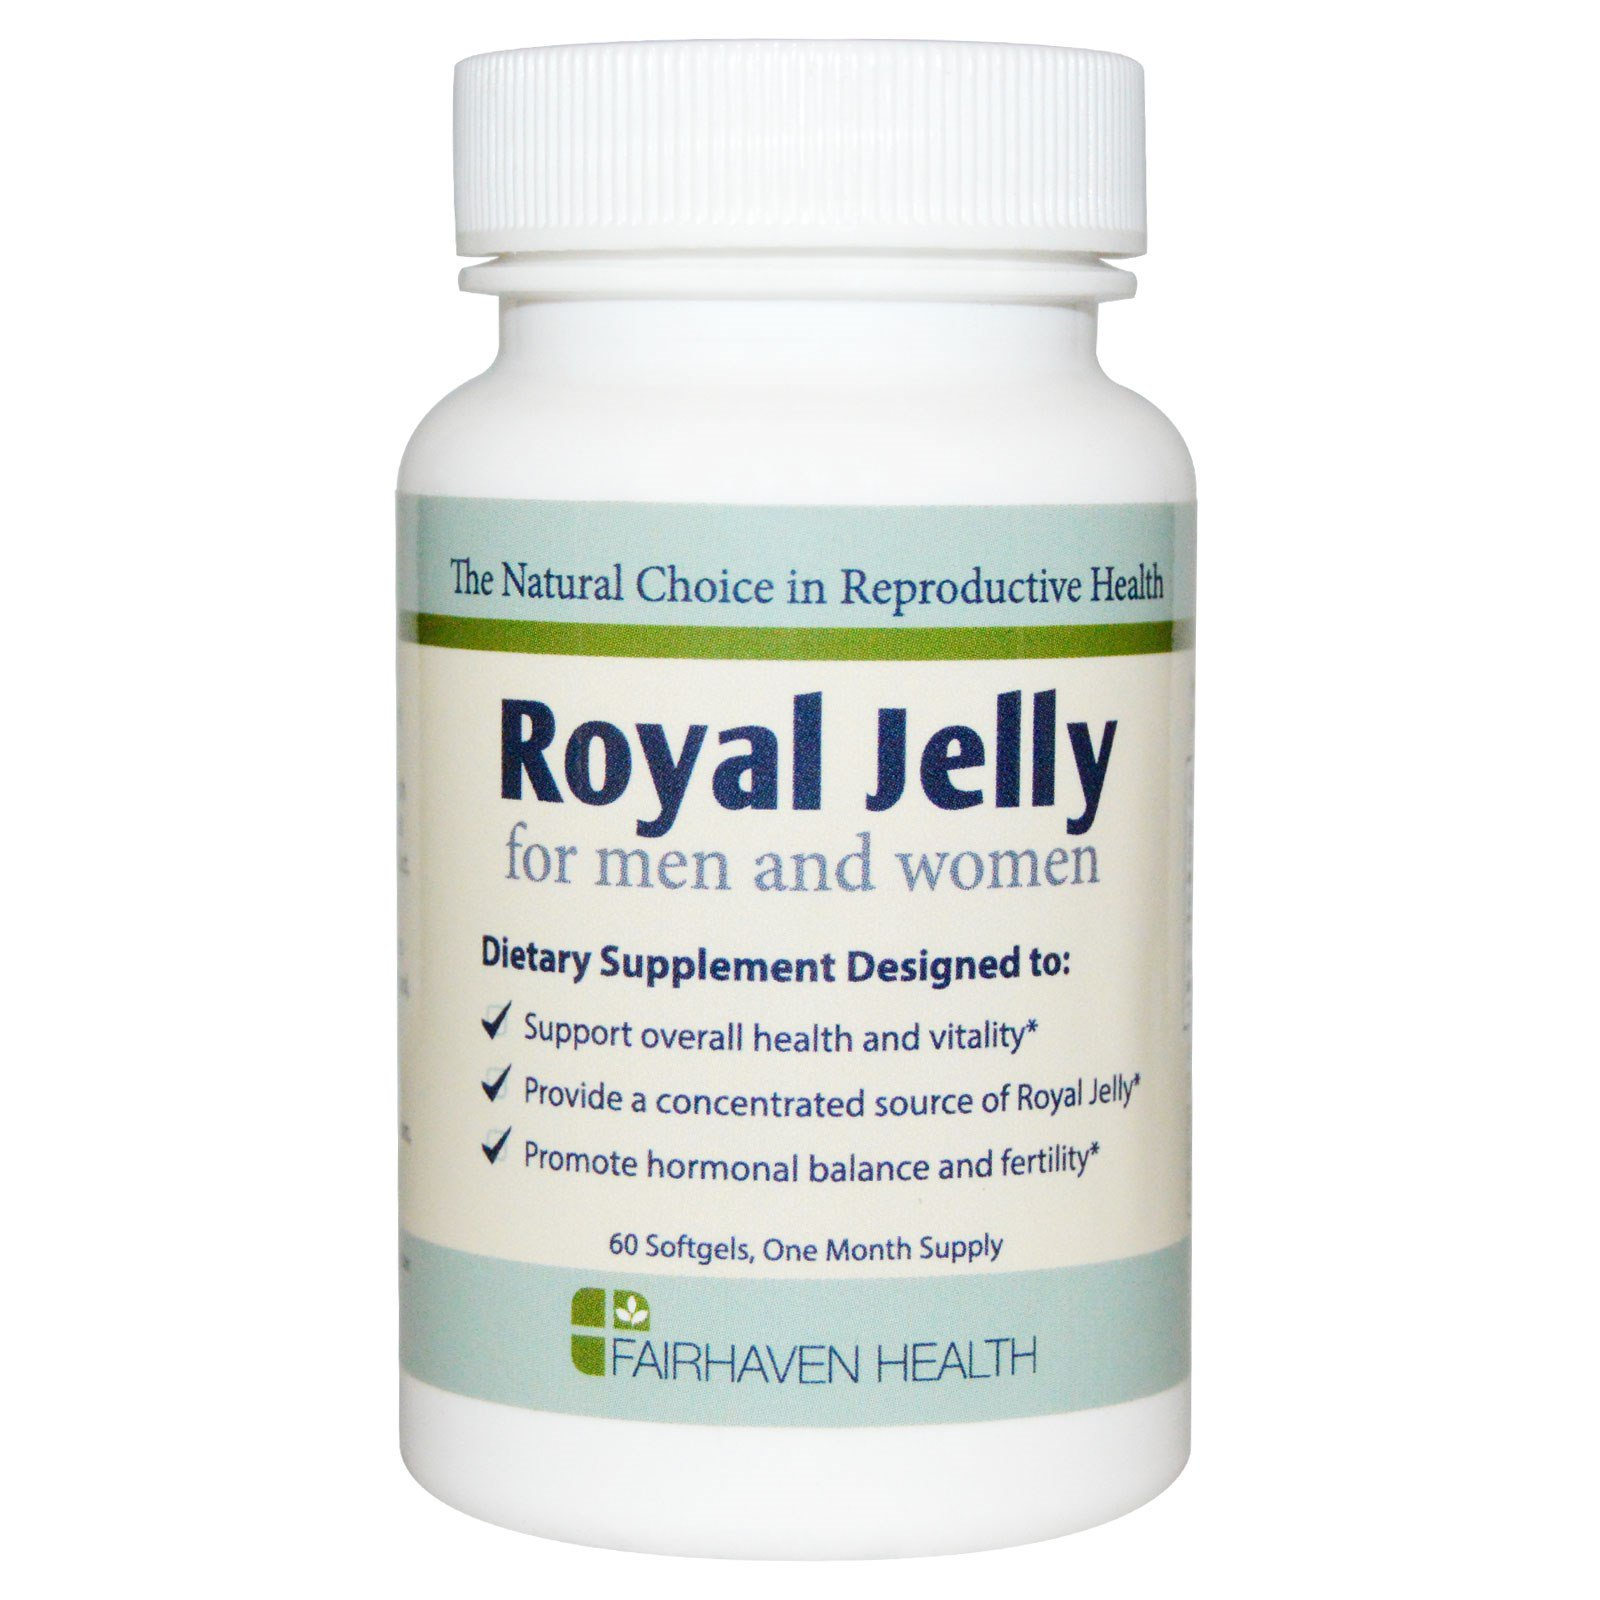 Royal jelly for women